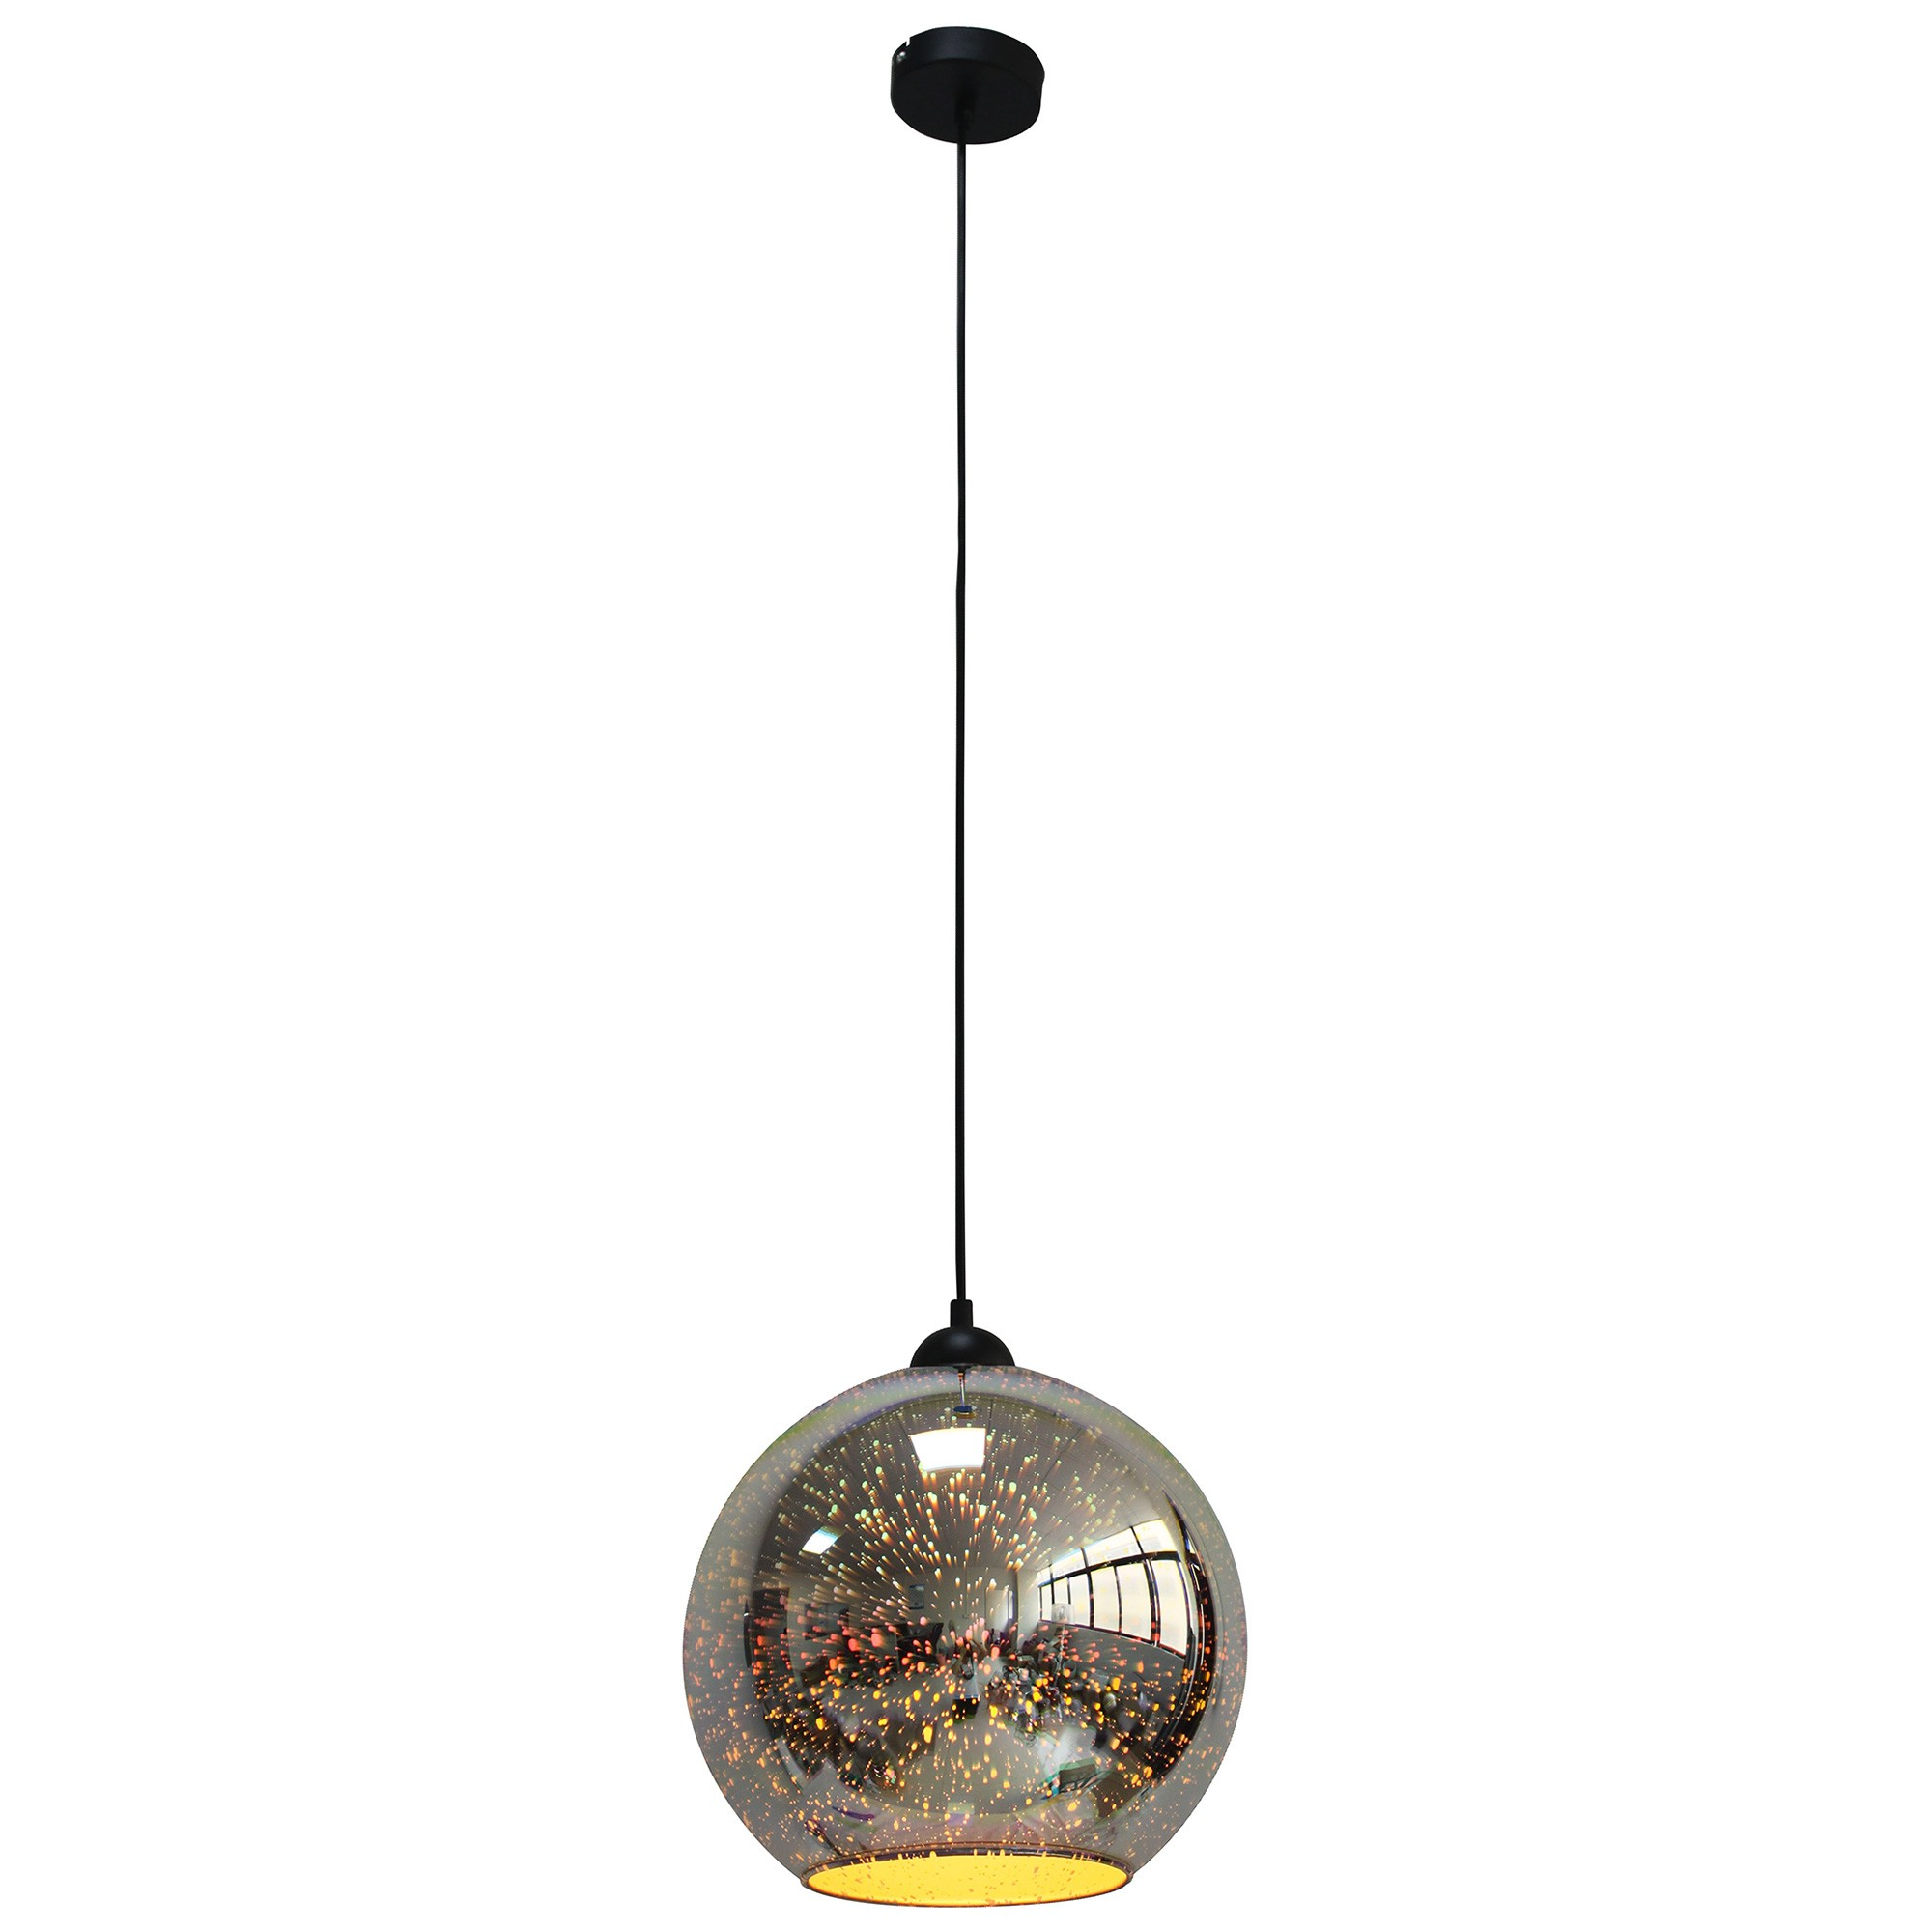 Javarone Glass Pendant Light, 30cm, Chrome